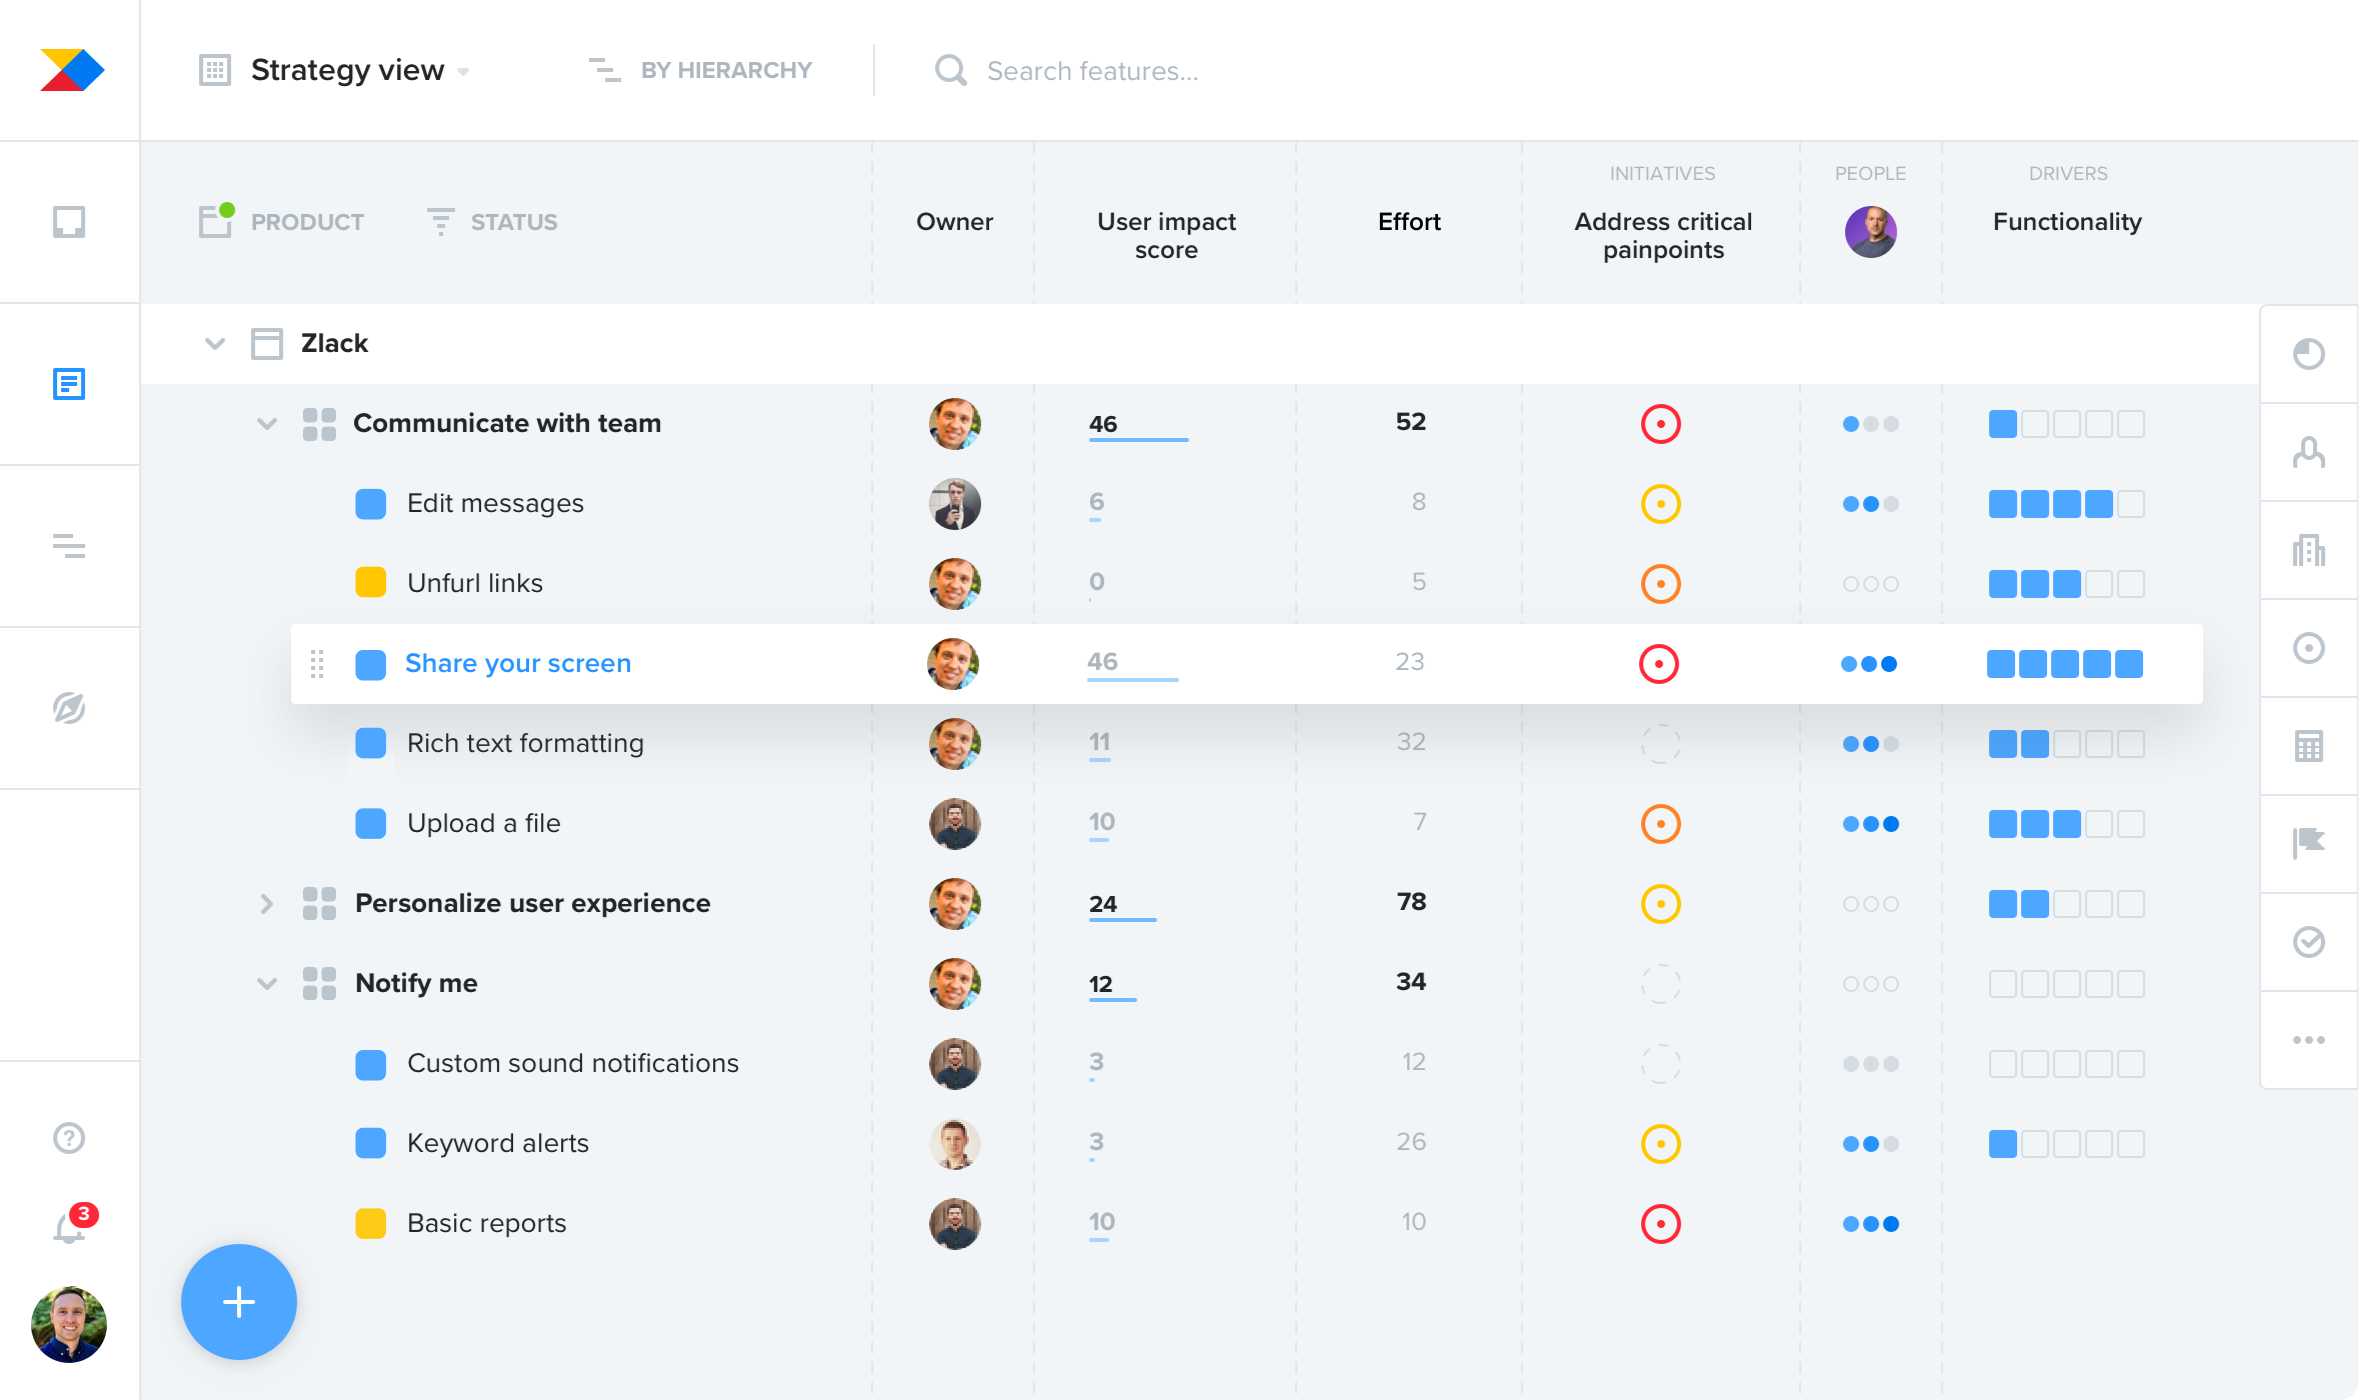 Productboard screenshot: Organize and prioritize feature ideas based on user needs and business objectives